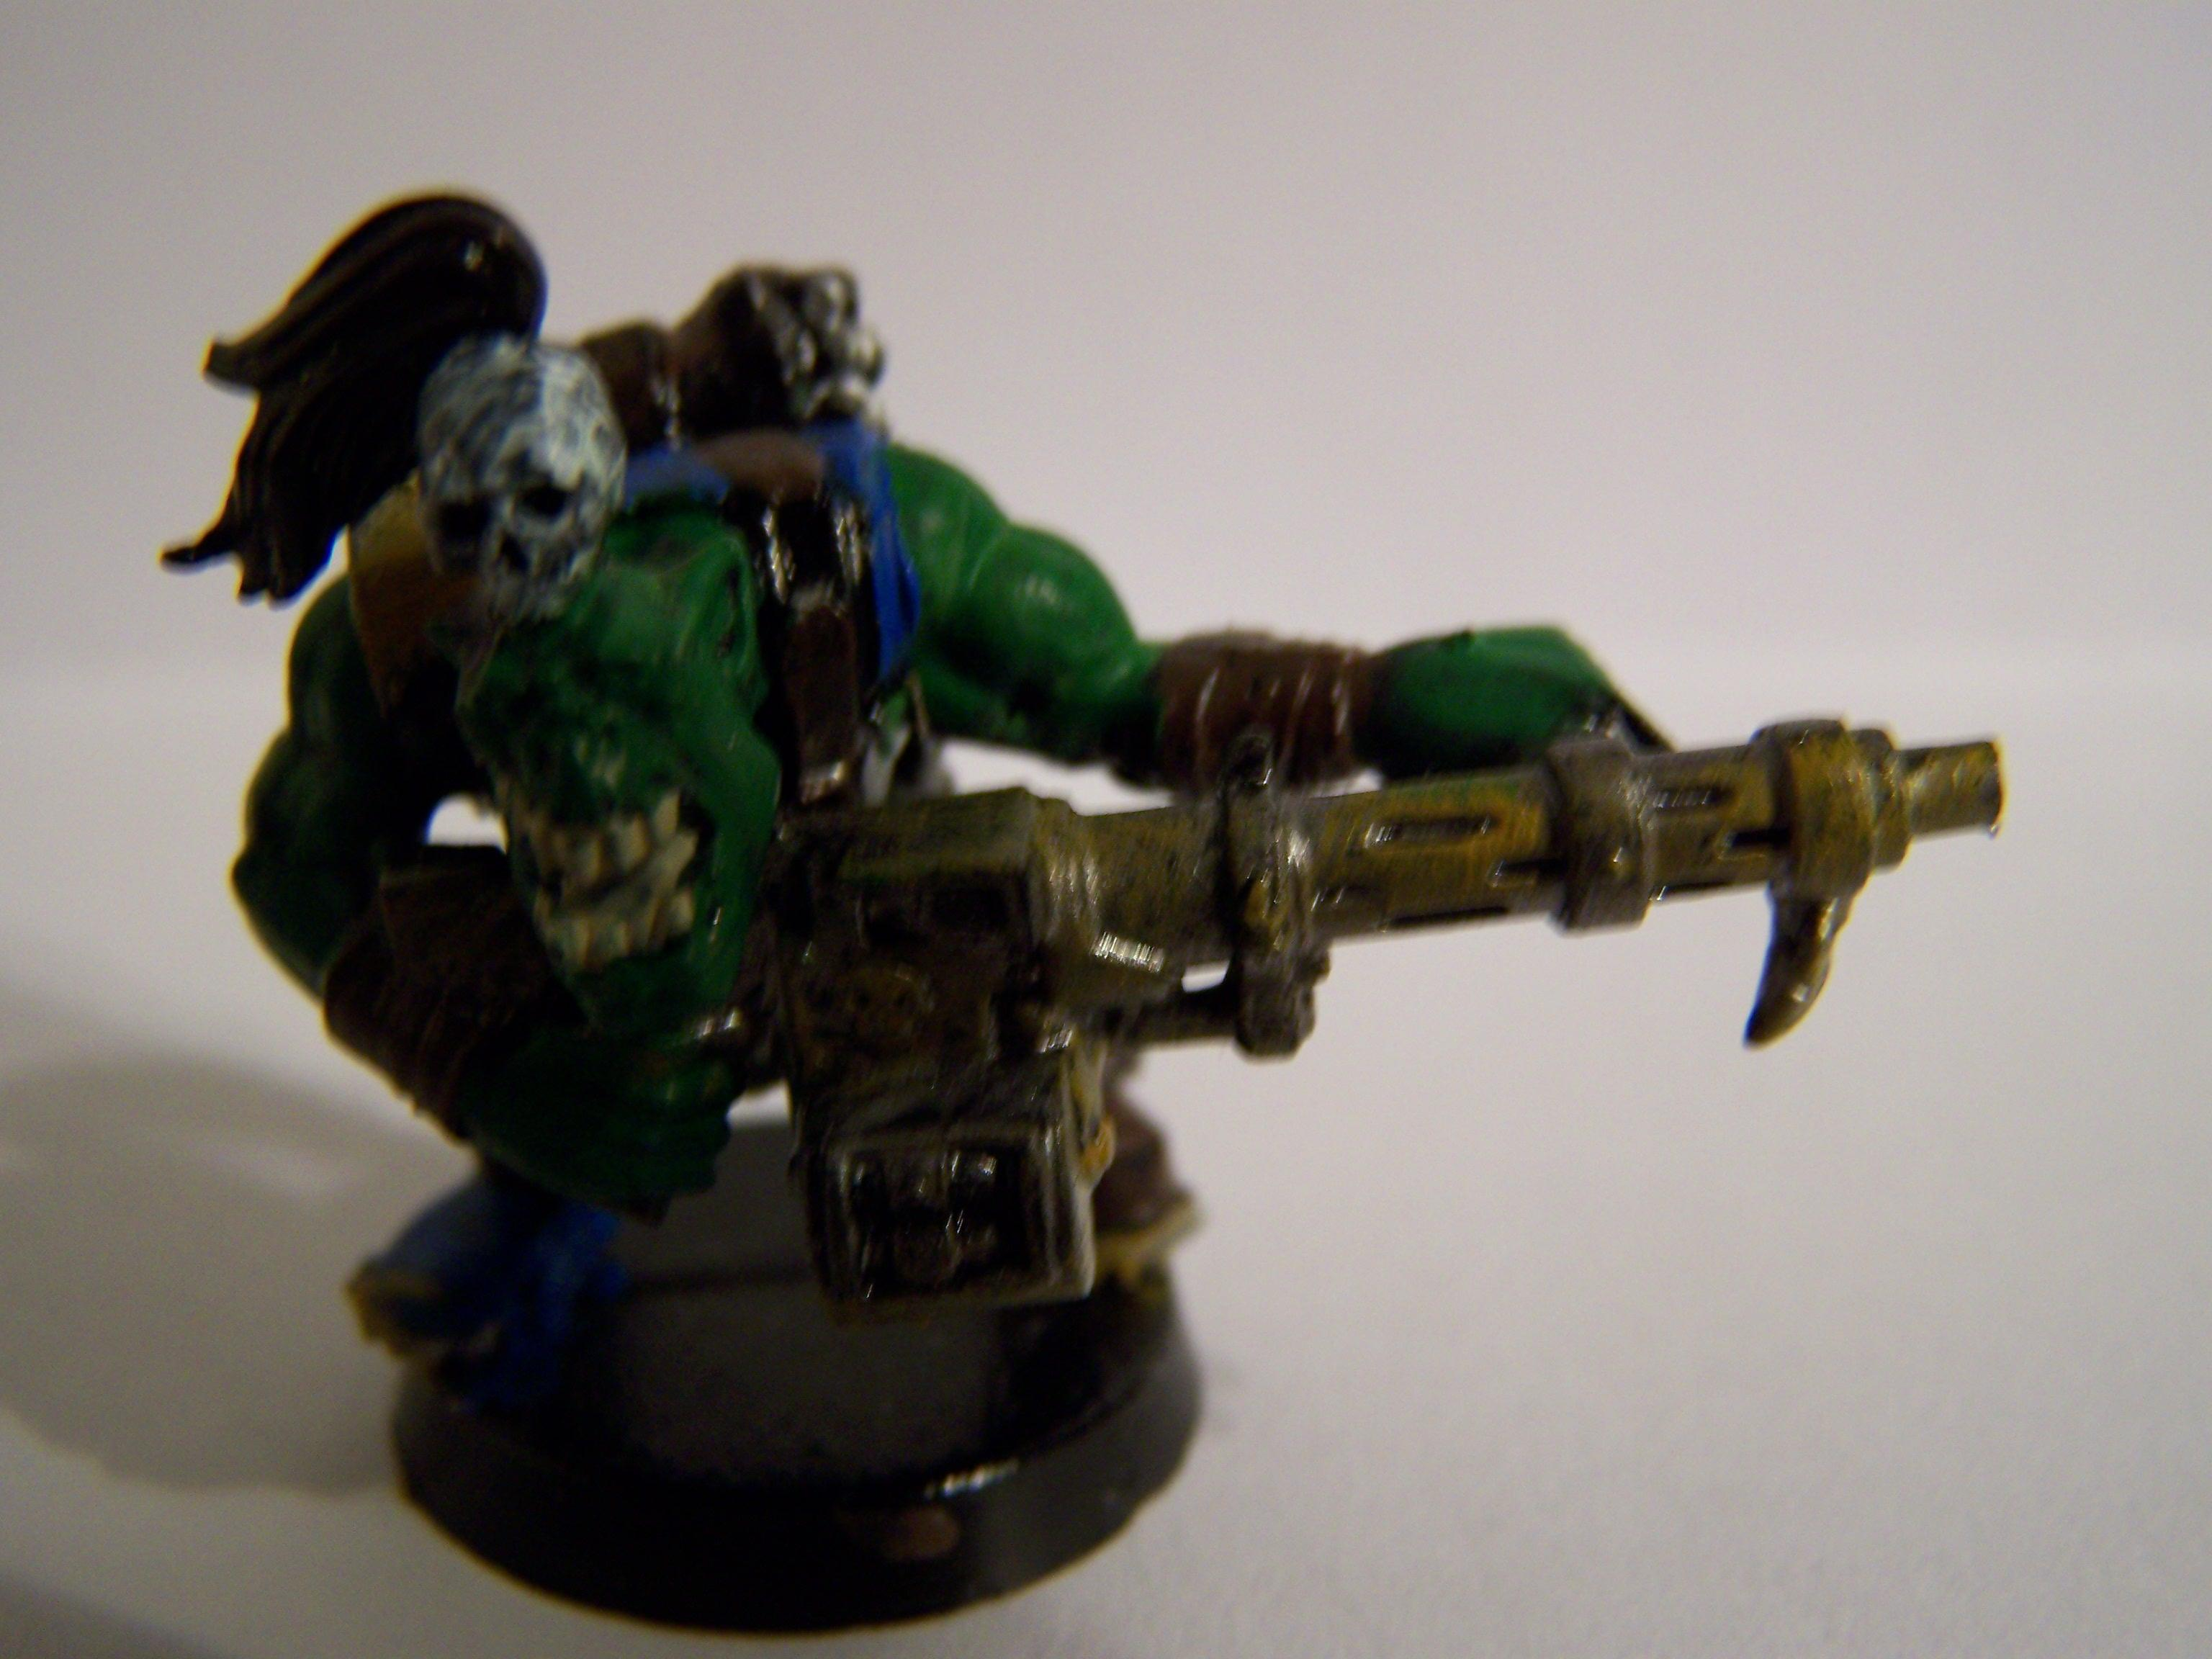 Deathskulls, Orks, Big Shoota